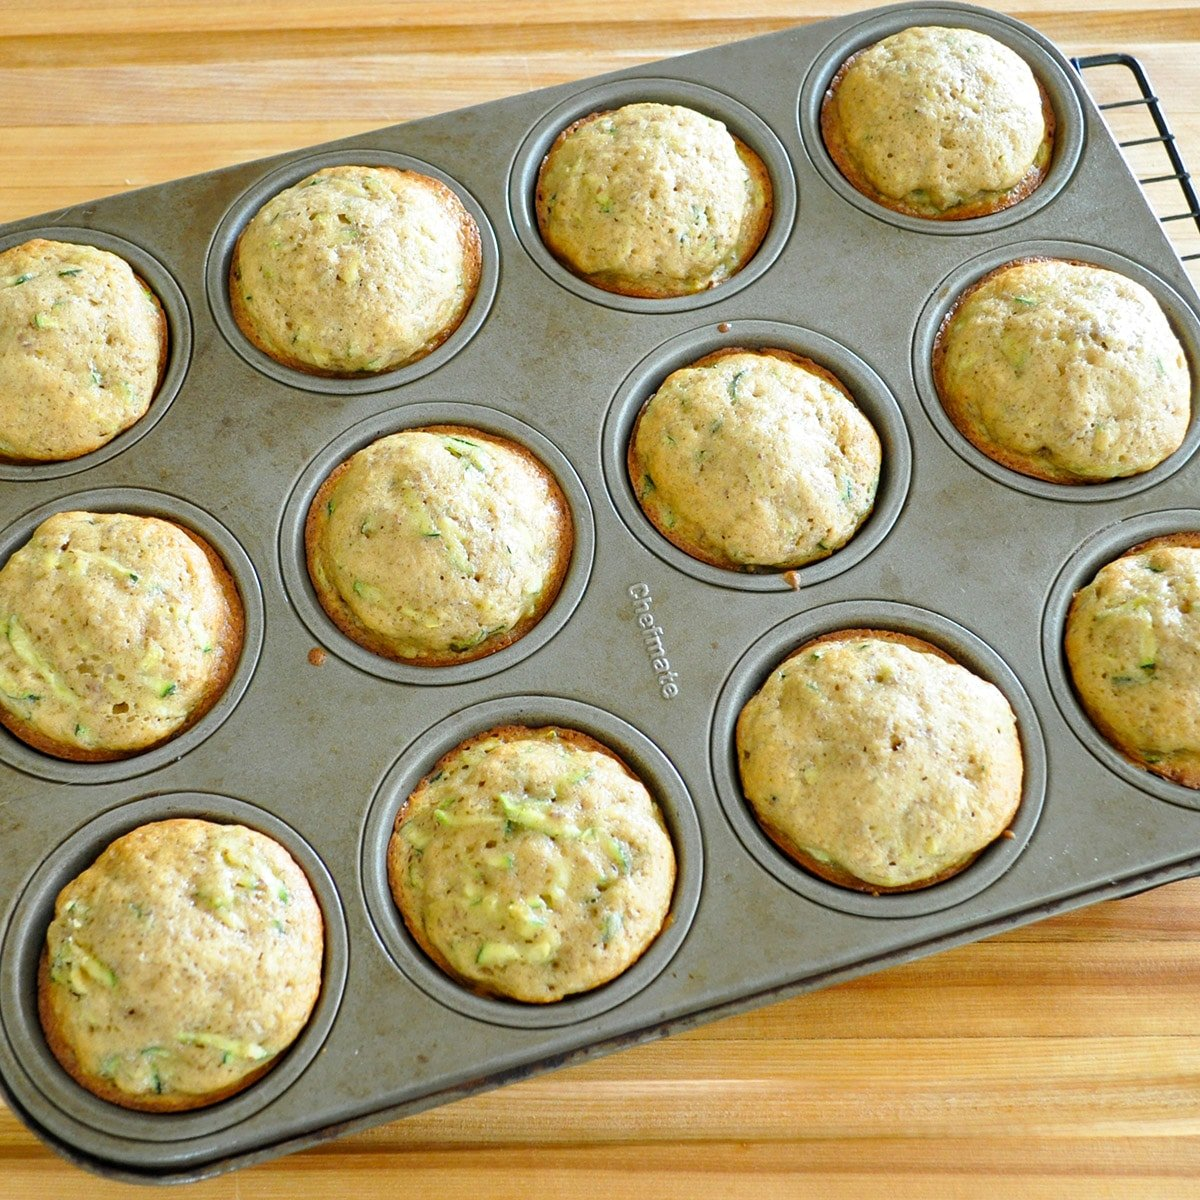 a muffin pan full of baked zucchini muffins